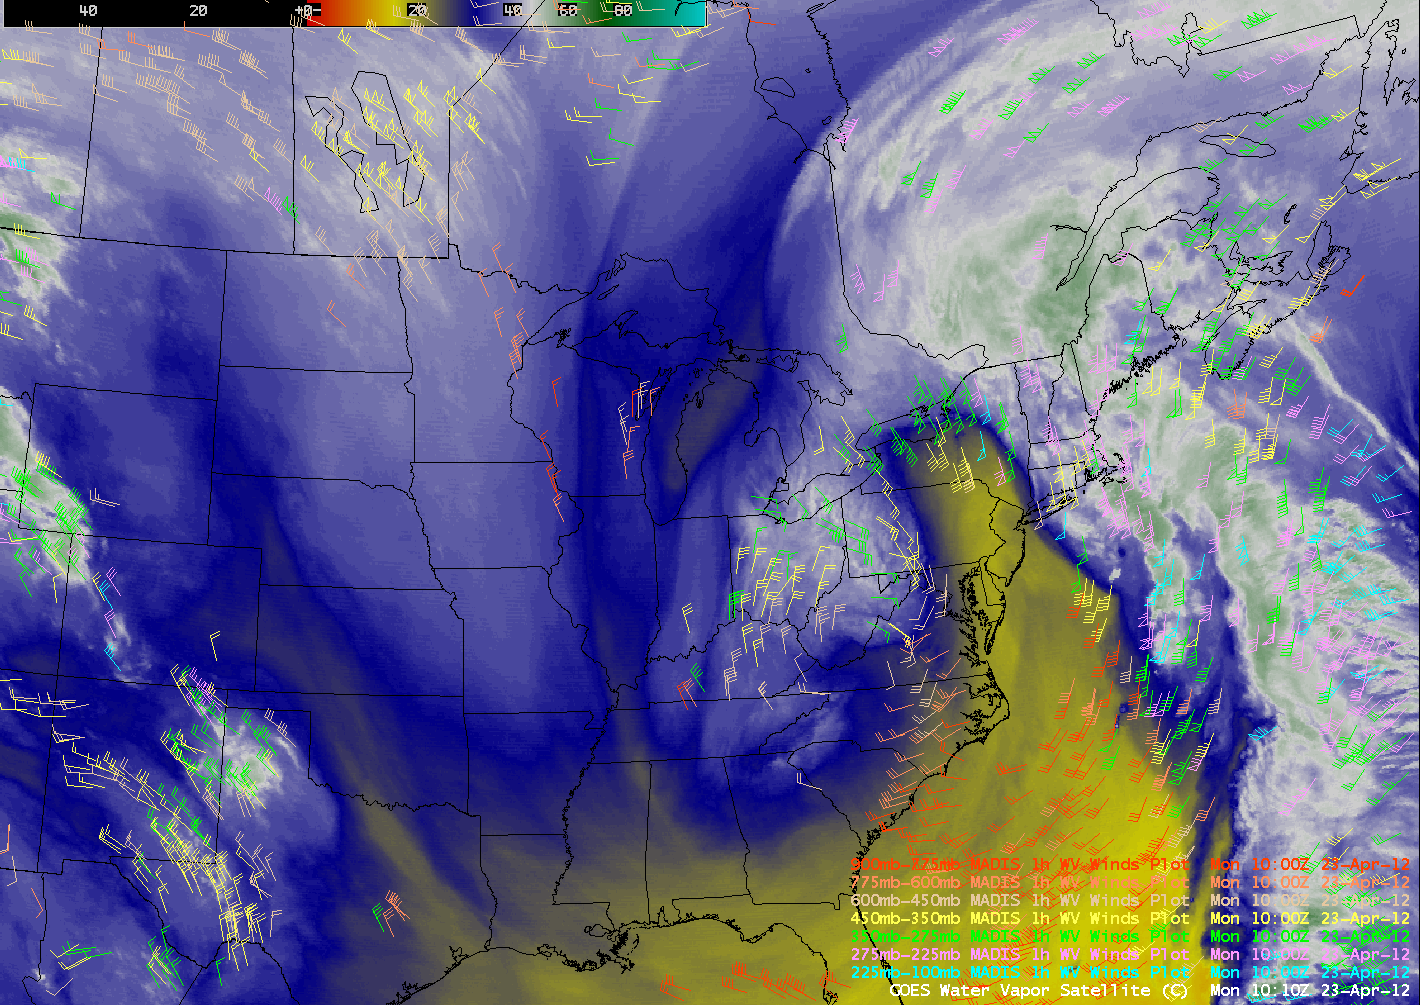 GOES-13 6.5 µm water vapor images + MADIS 1-hour water vapor winds (click image to play animation)